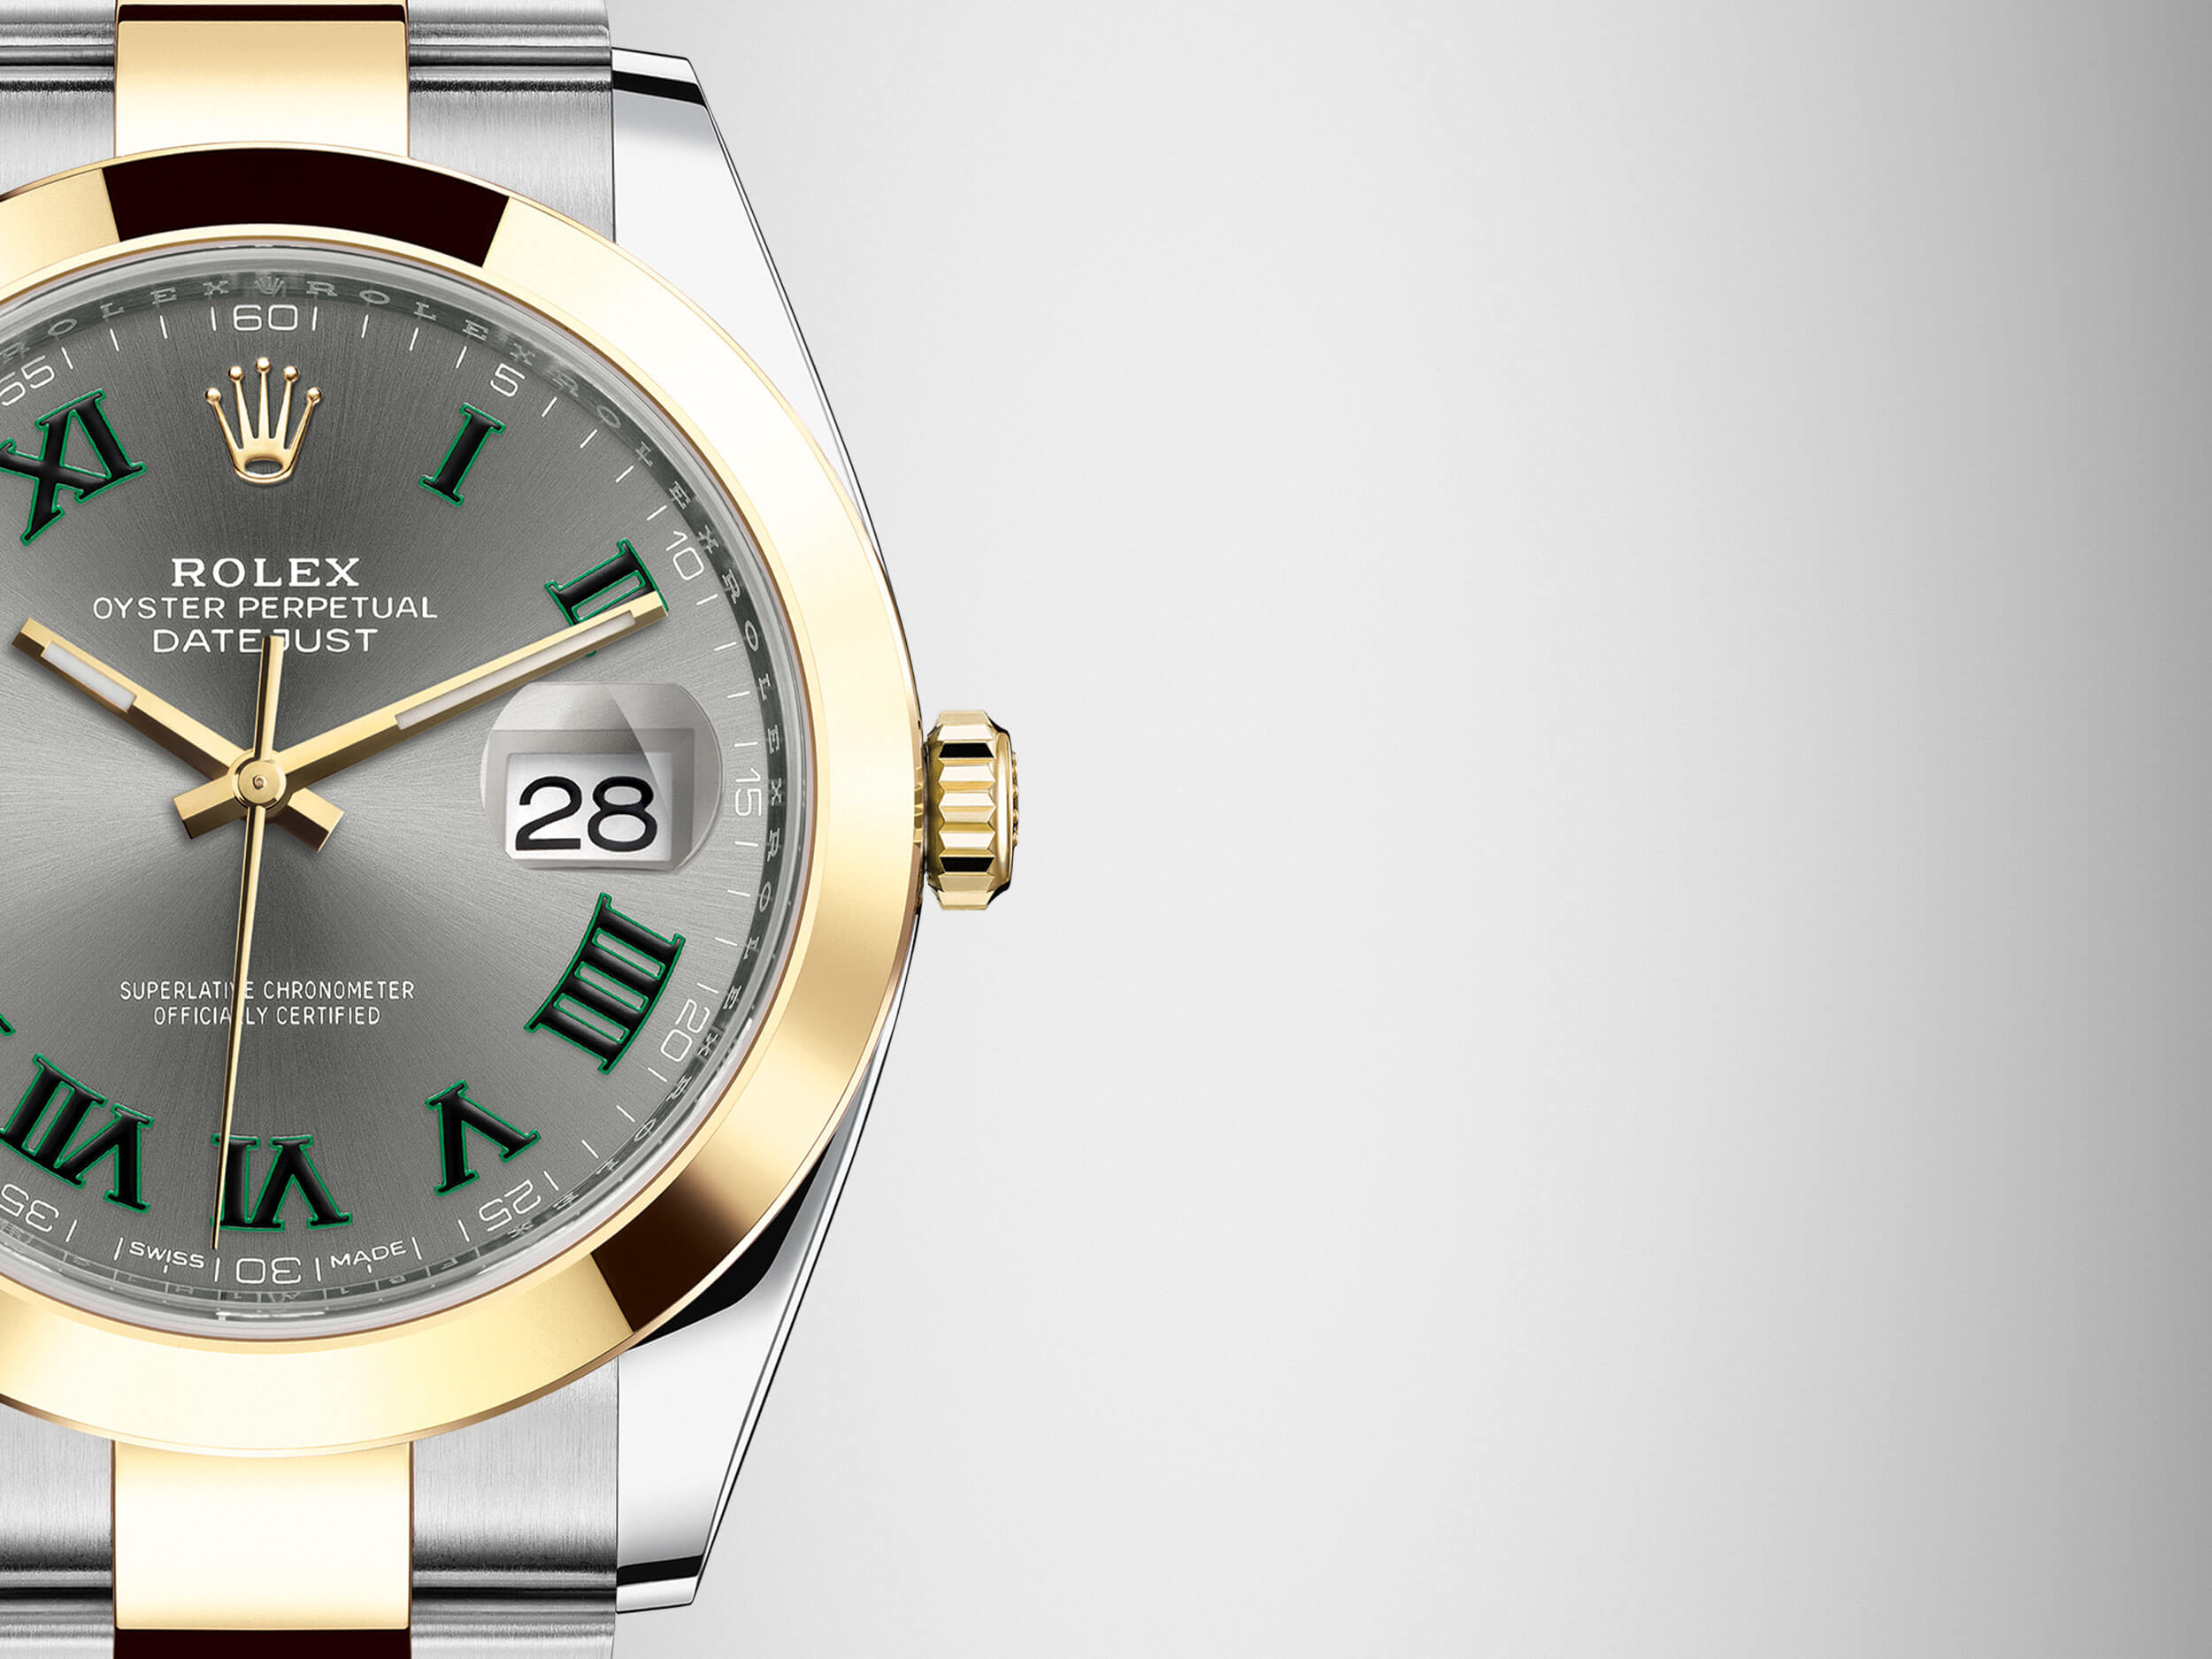 The Rolex Watches -